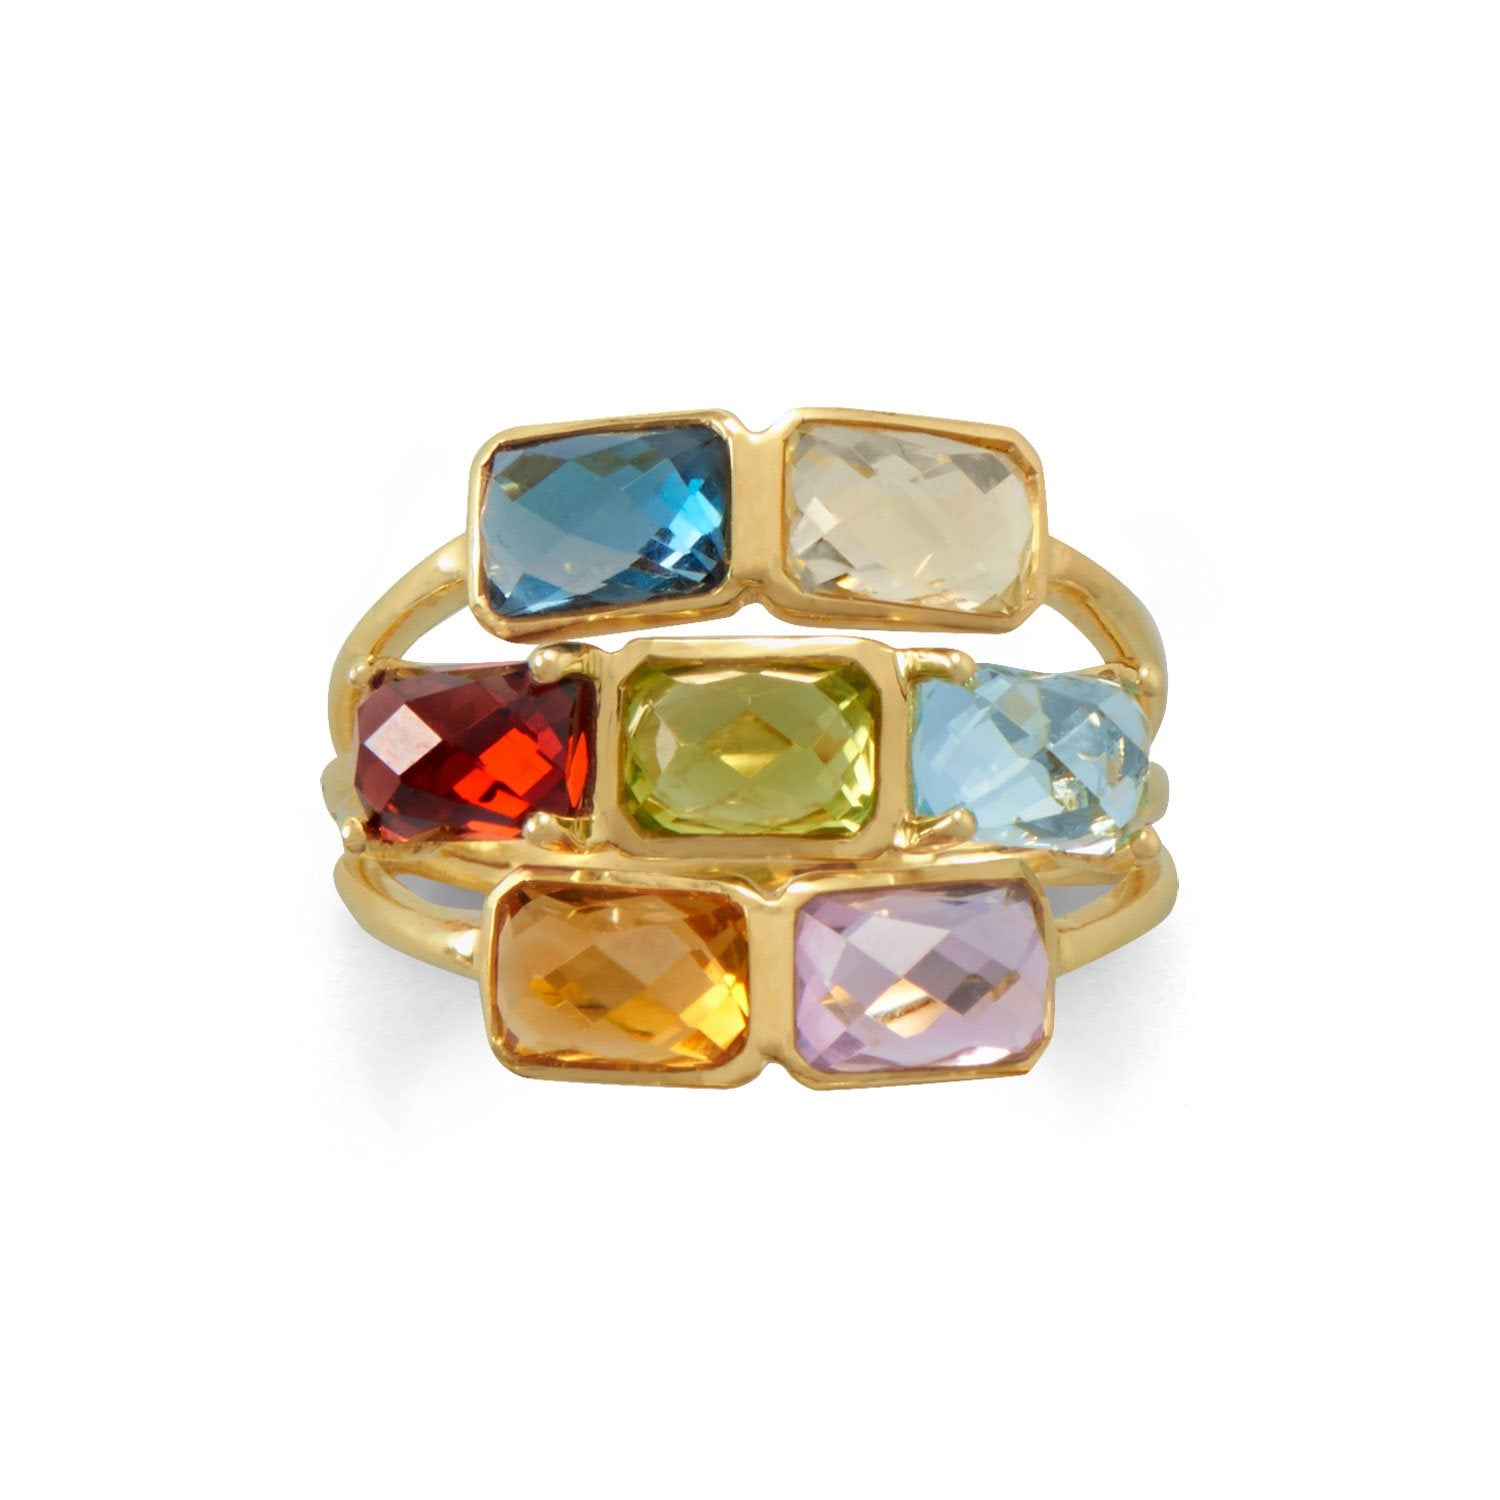 14 Karat Gold Plated Faceted Rectangle Multi Gemstone Ring - Rocky Mt. Discount Outlet